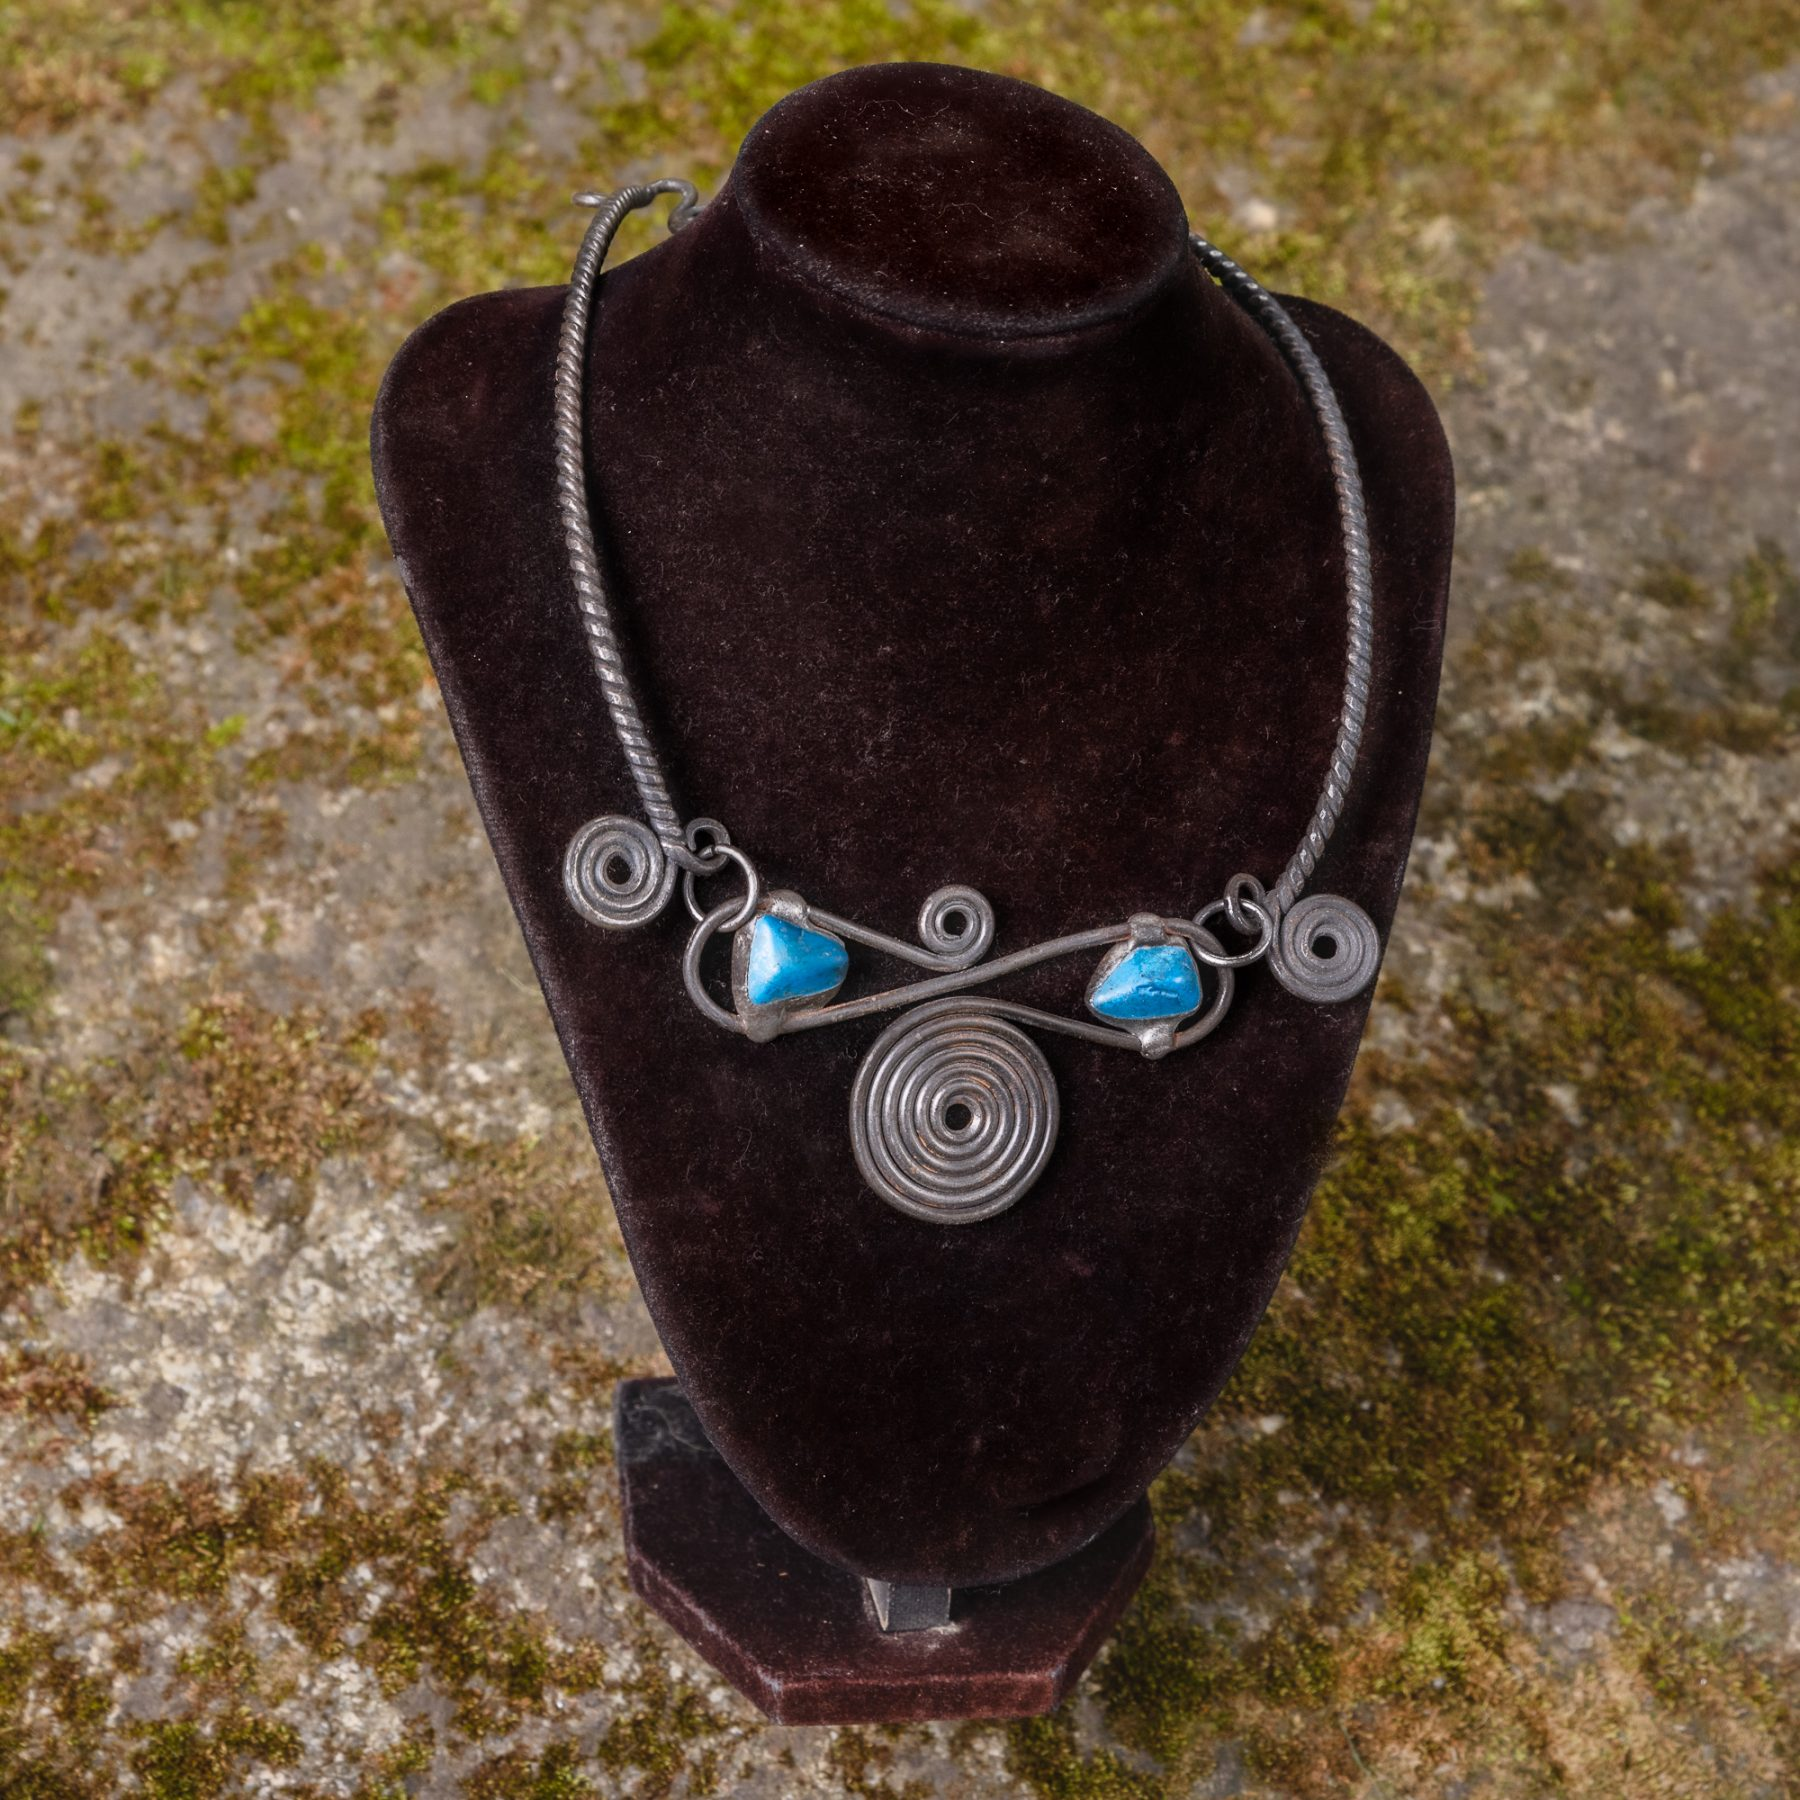 Torques Necklace with Ornaments and Gem Stones v.1